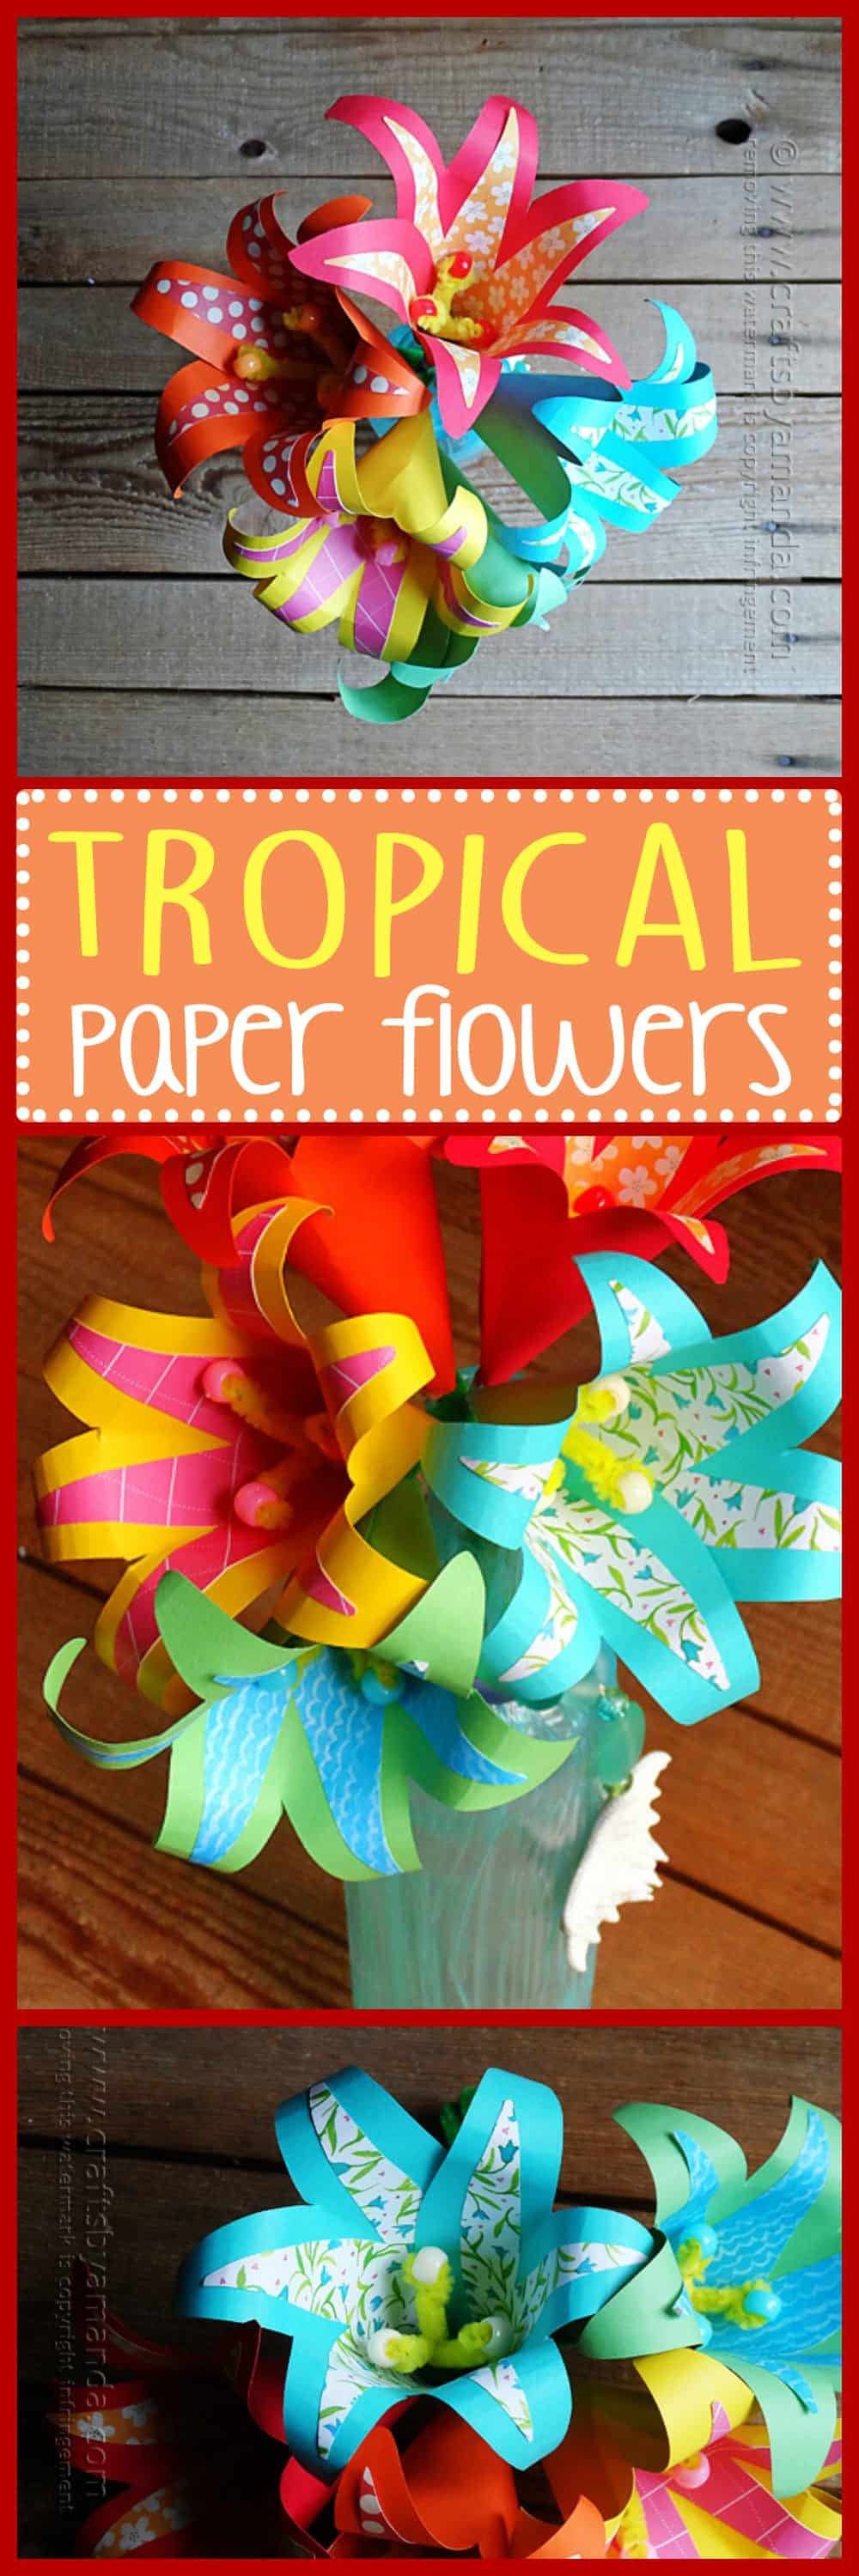 Tropical Paper Flowers Crafts By Amanda